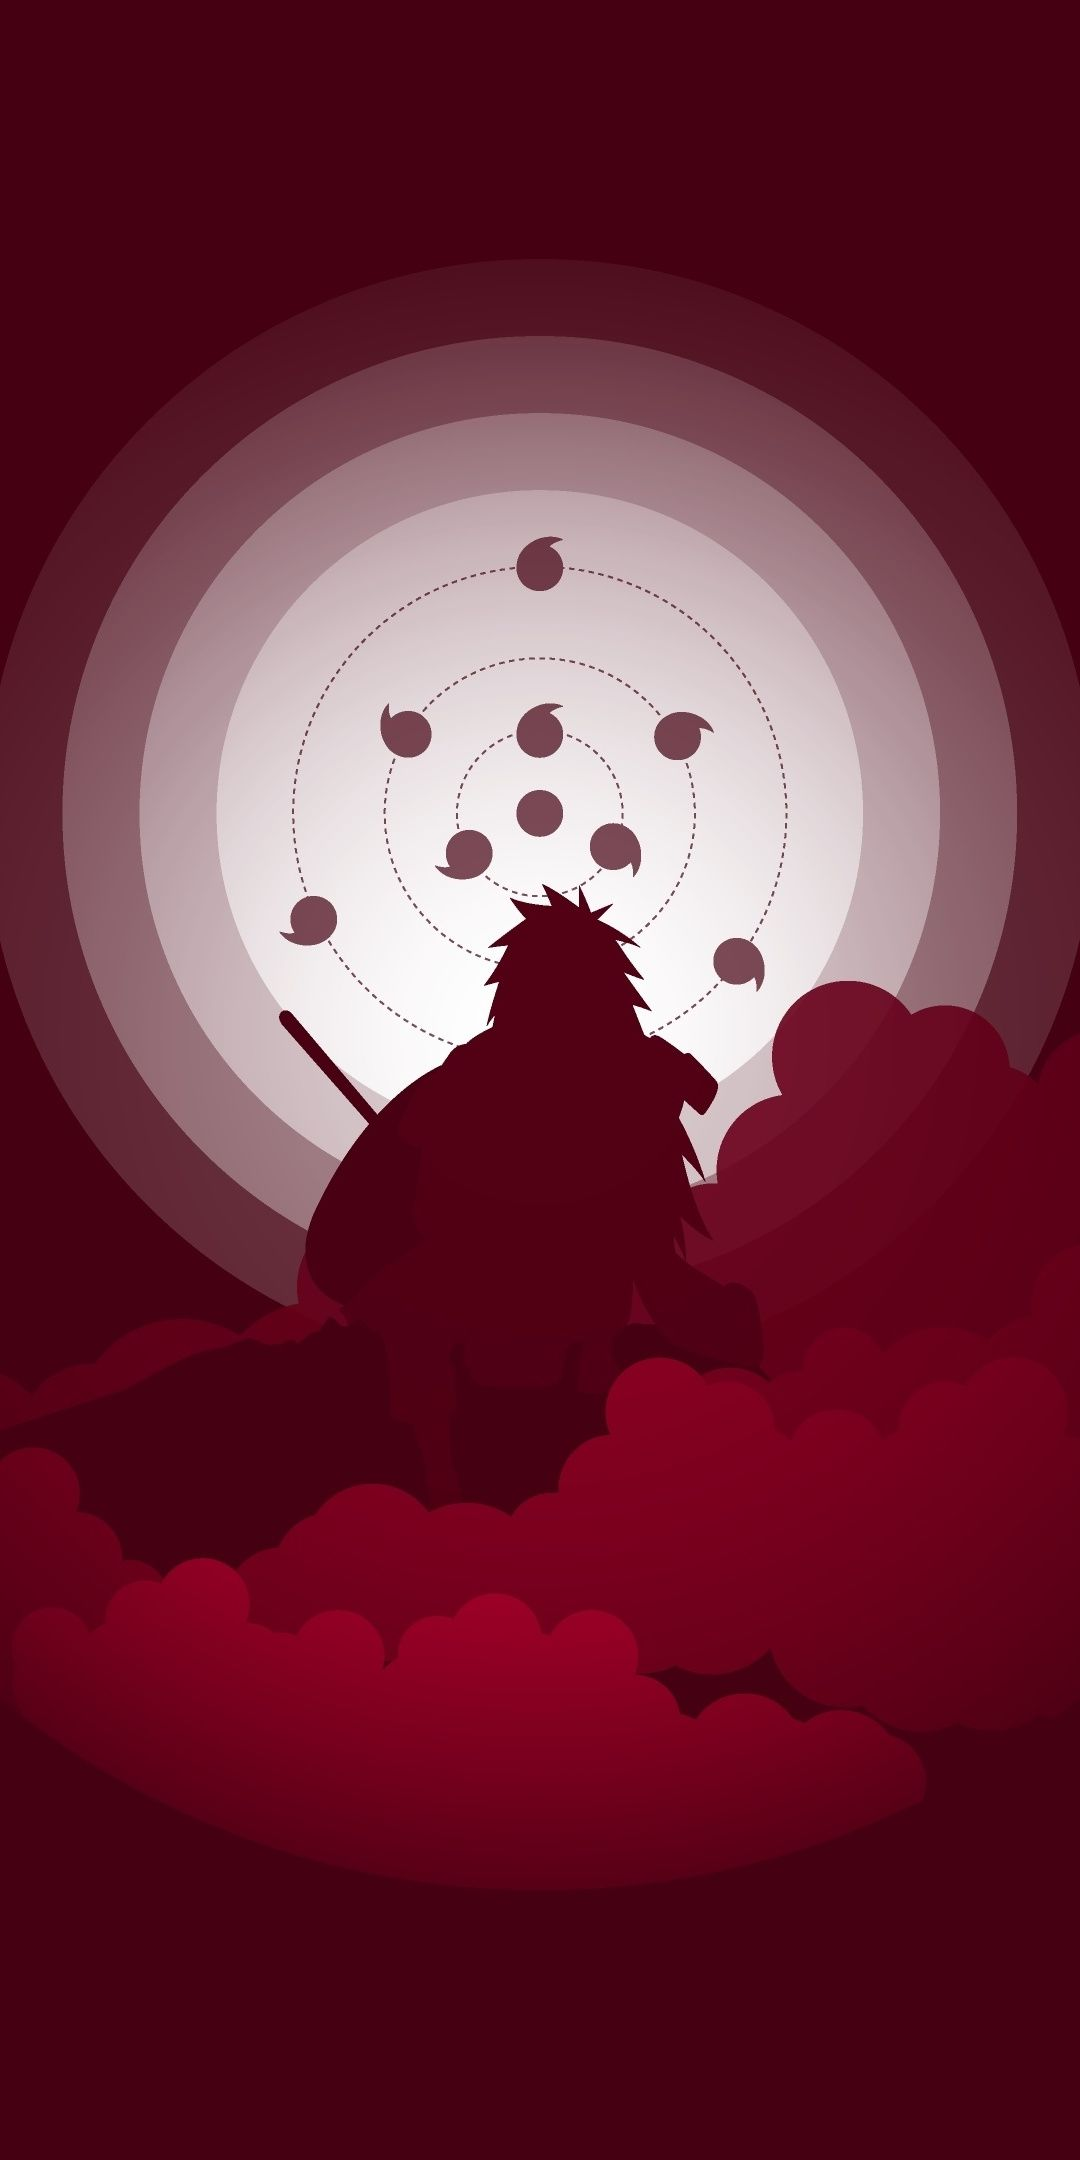 Naruto Anime Madara Uchiha Art 1080x2160 Wallpaper With